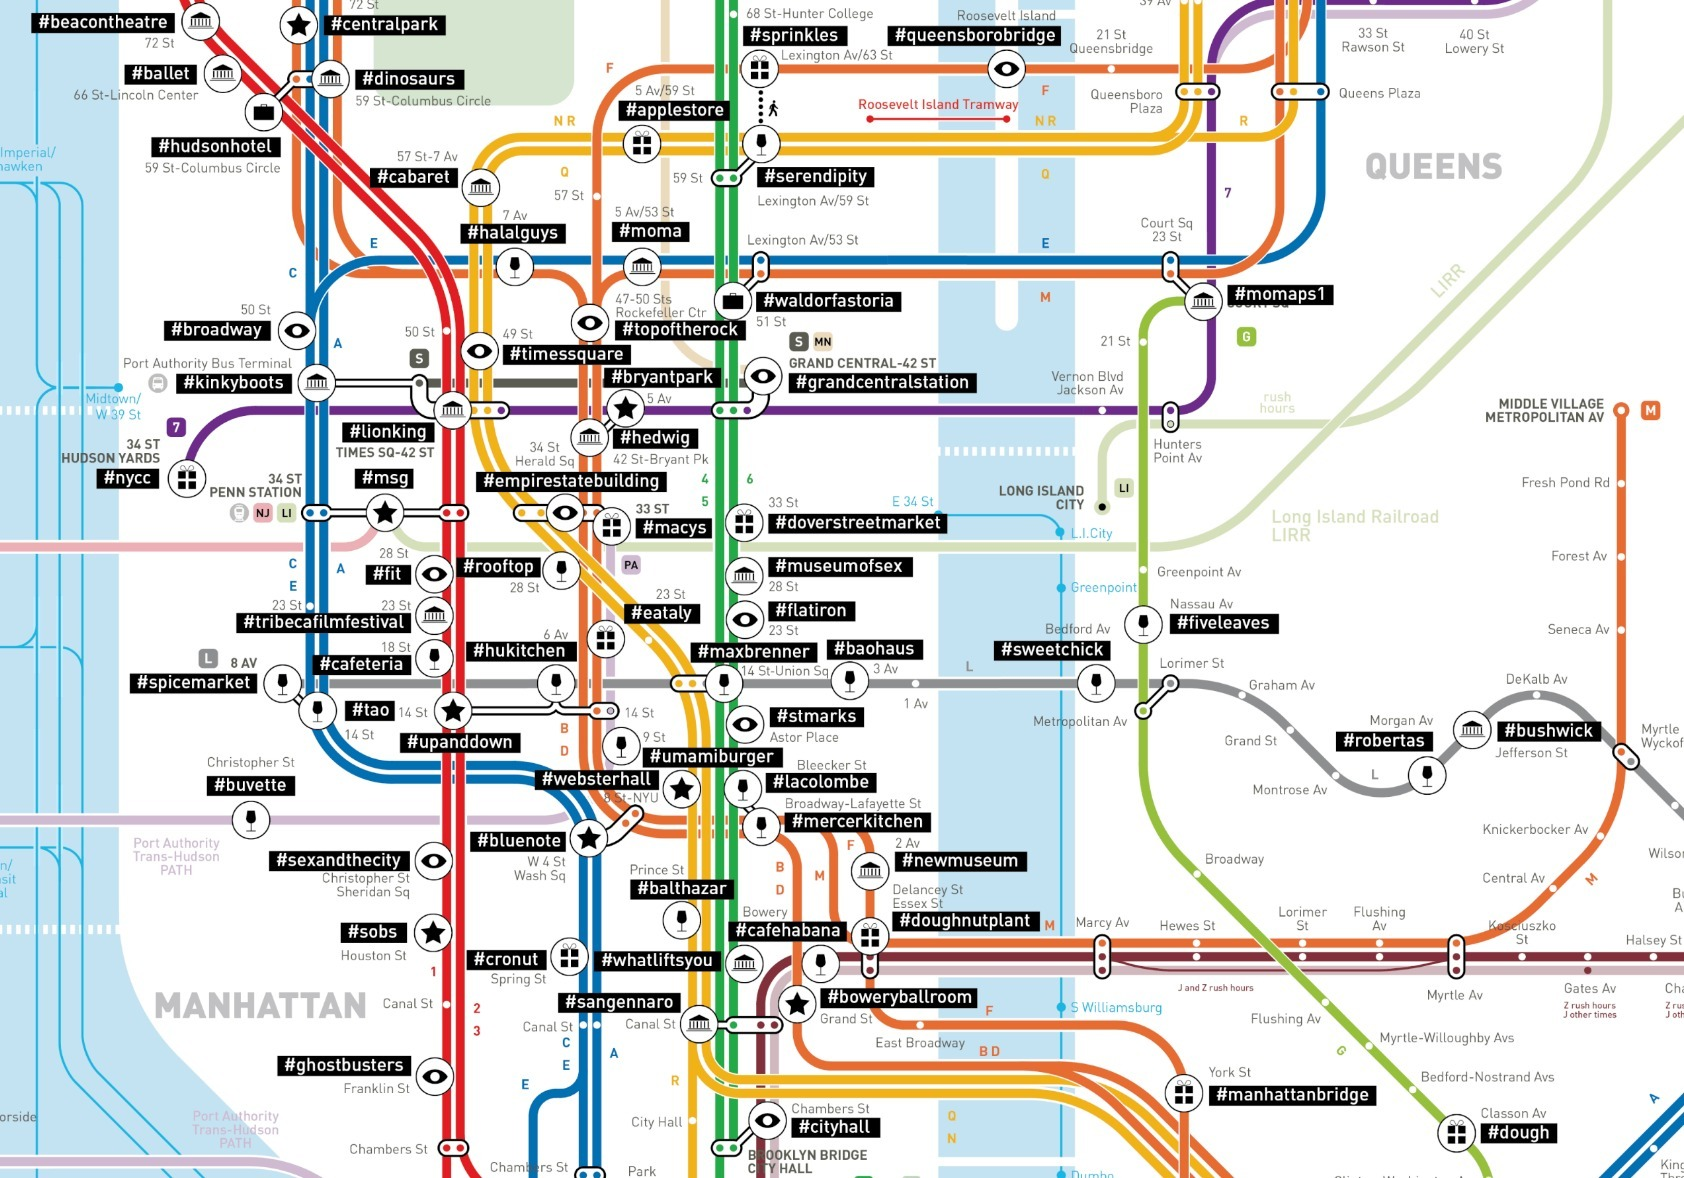 Mapping NYC subway stops according to their most popular Instagram